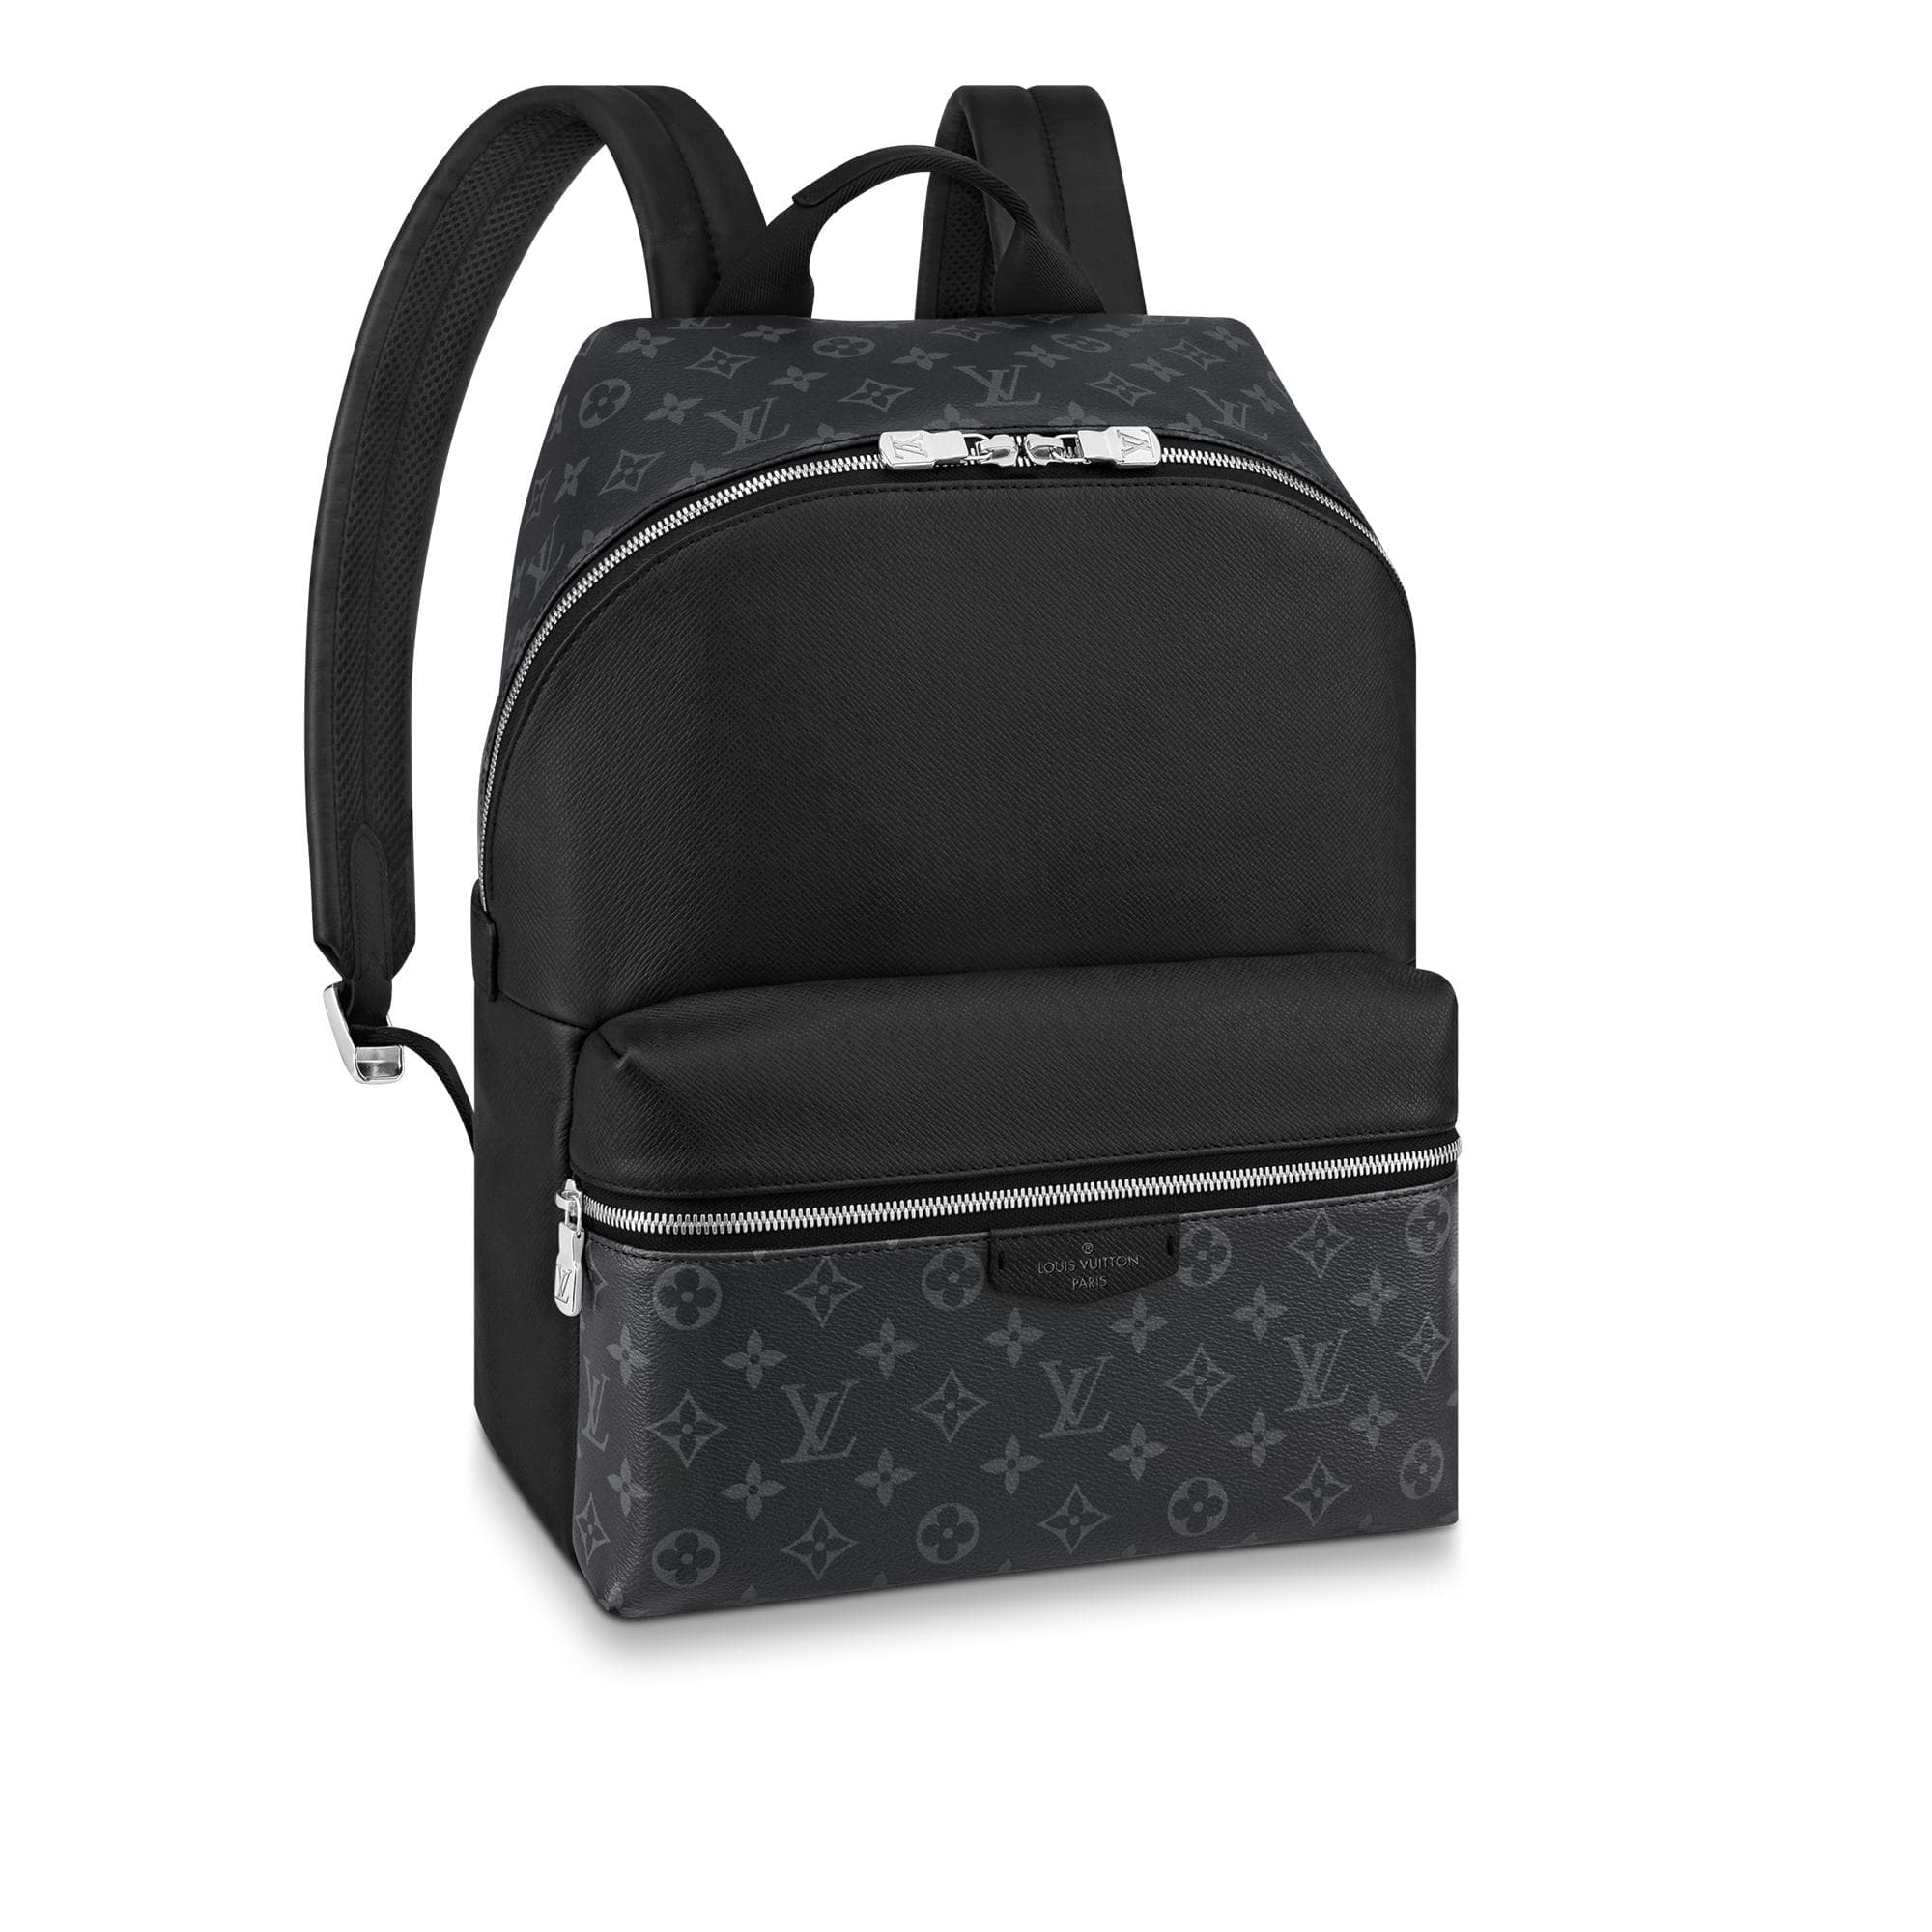 Louis Vuitton Discovery Backpack Monogram